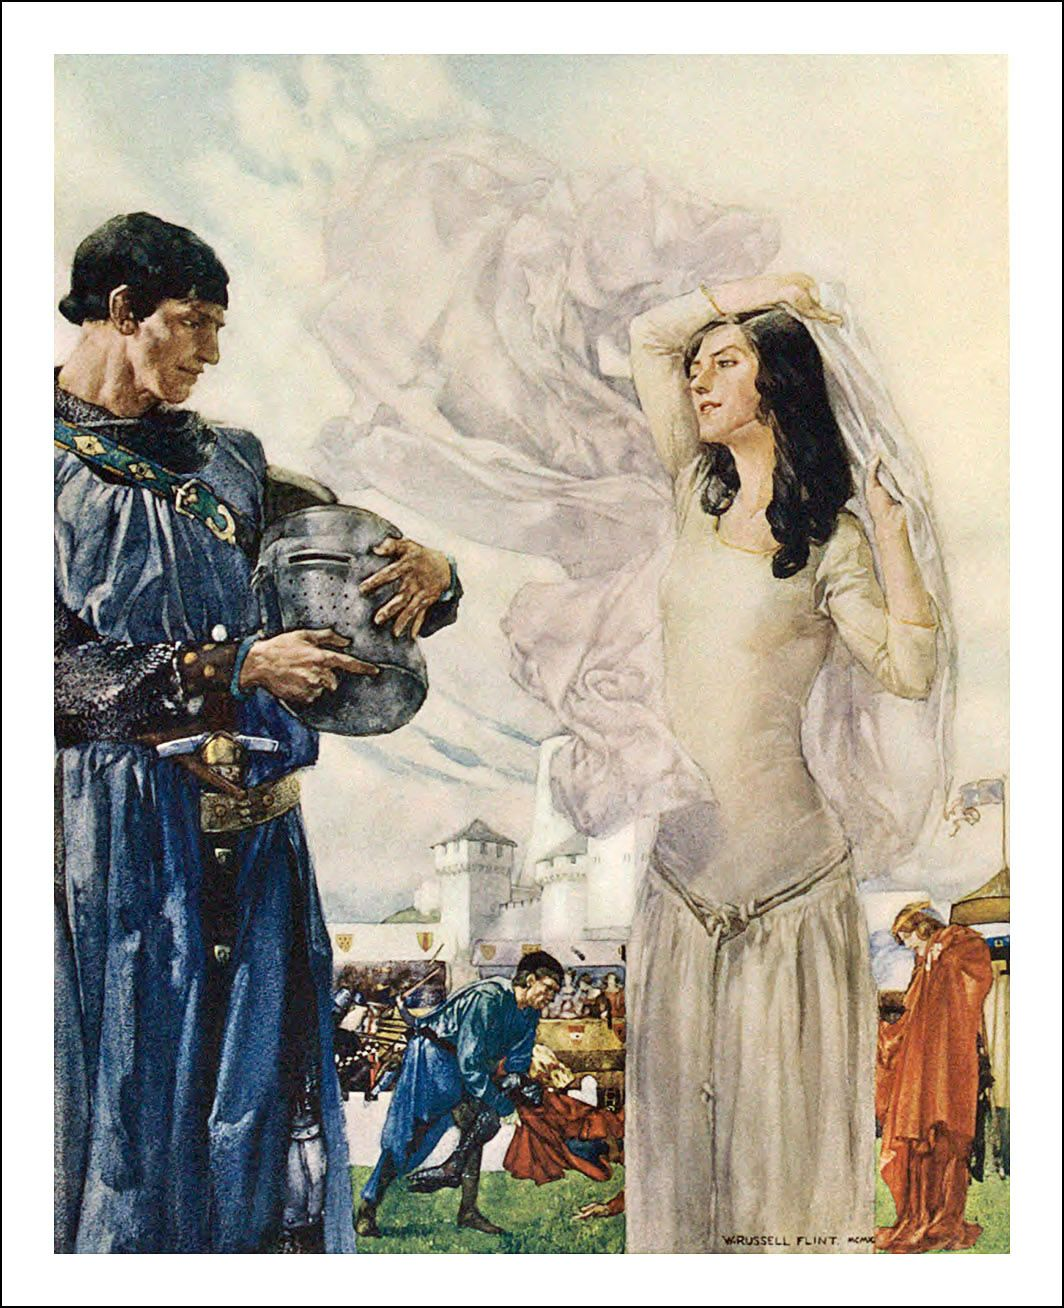 le morte d arthur nobility Use of this phenomenon in a book by thomas malory, le morte d'arthur accusations among the nobility was embraced (neillands, p 63) this advocacy is.